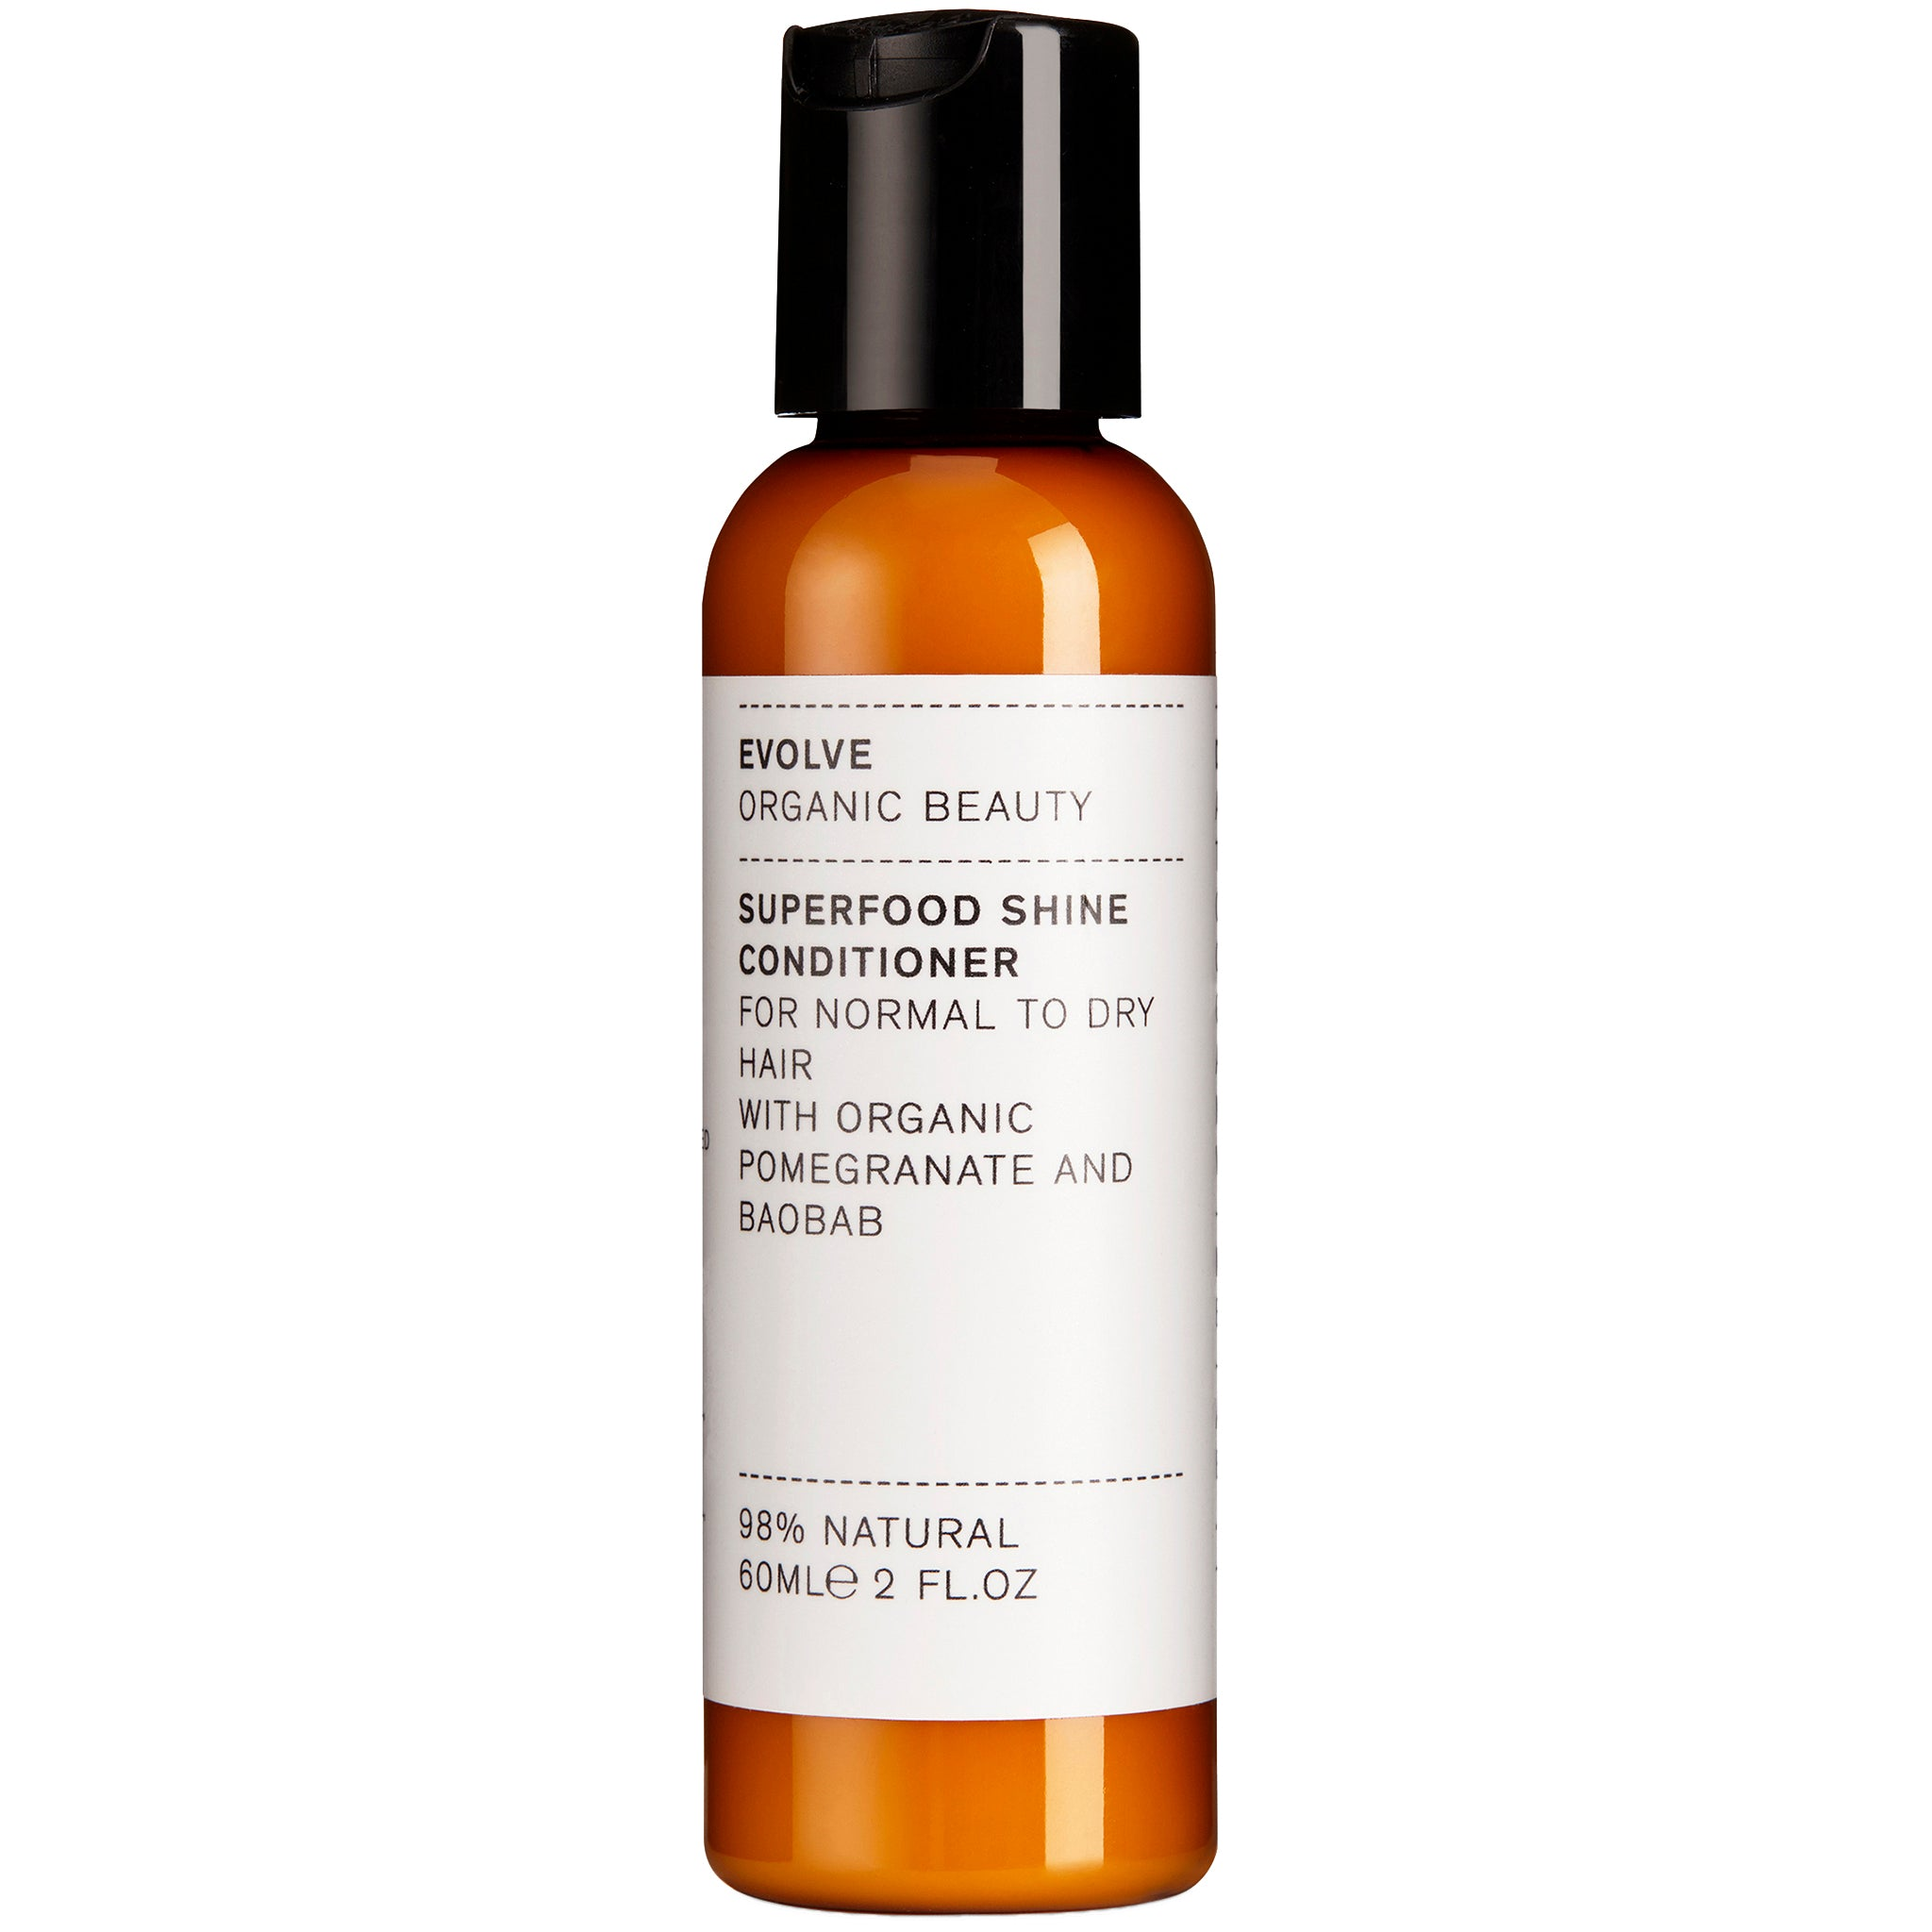 Superfood Shine Conditioner - Travel Size (Product Expiry Jan 2021)